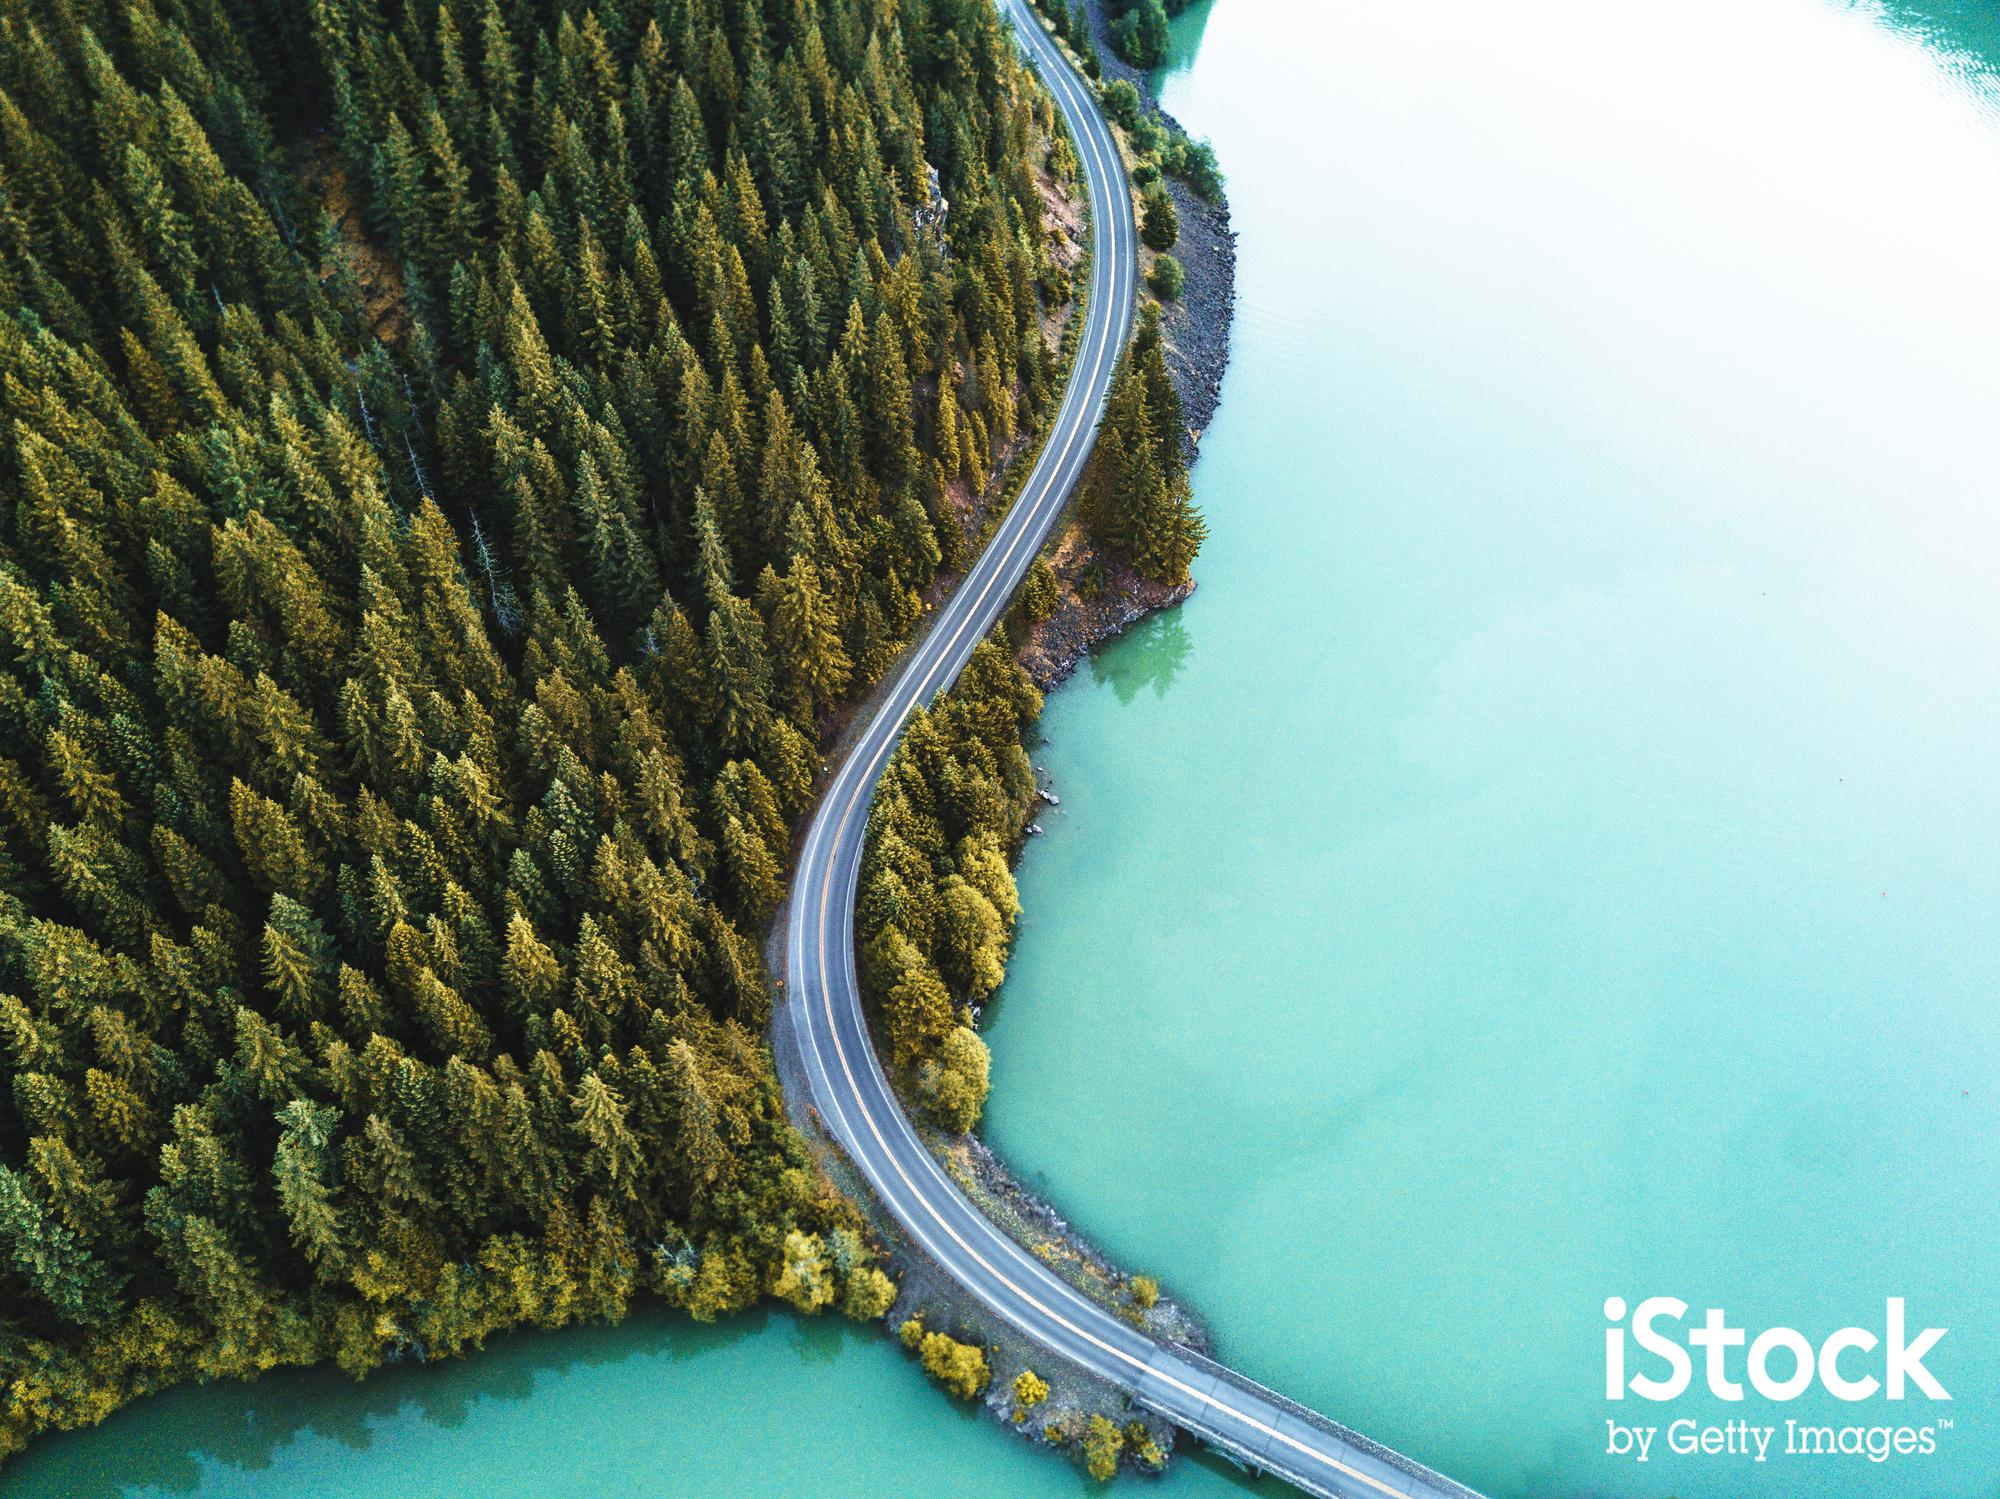 Stunning aerial view of road, forest and sea